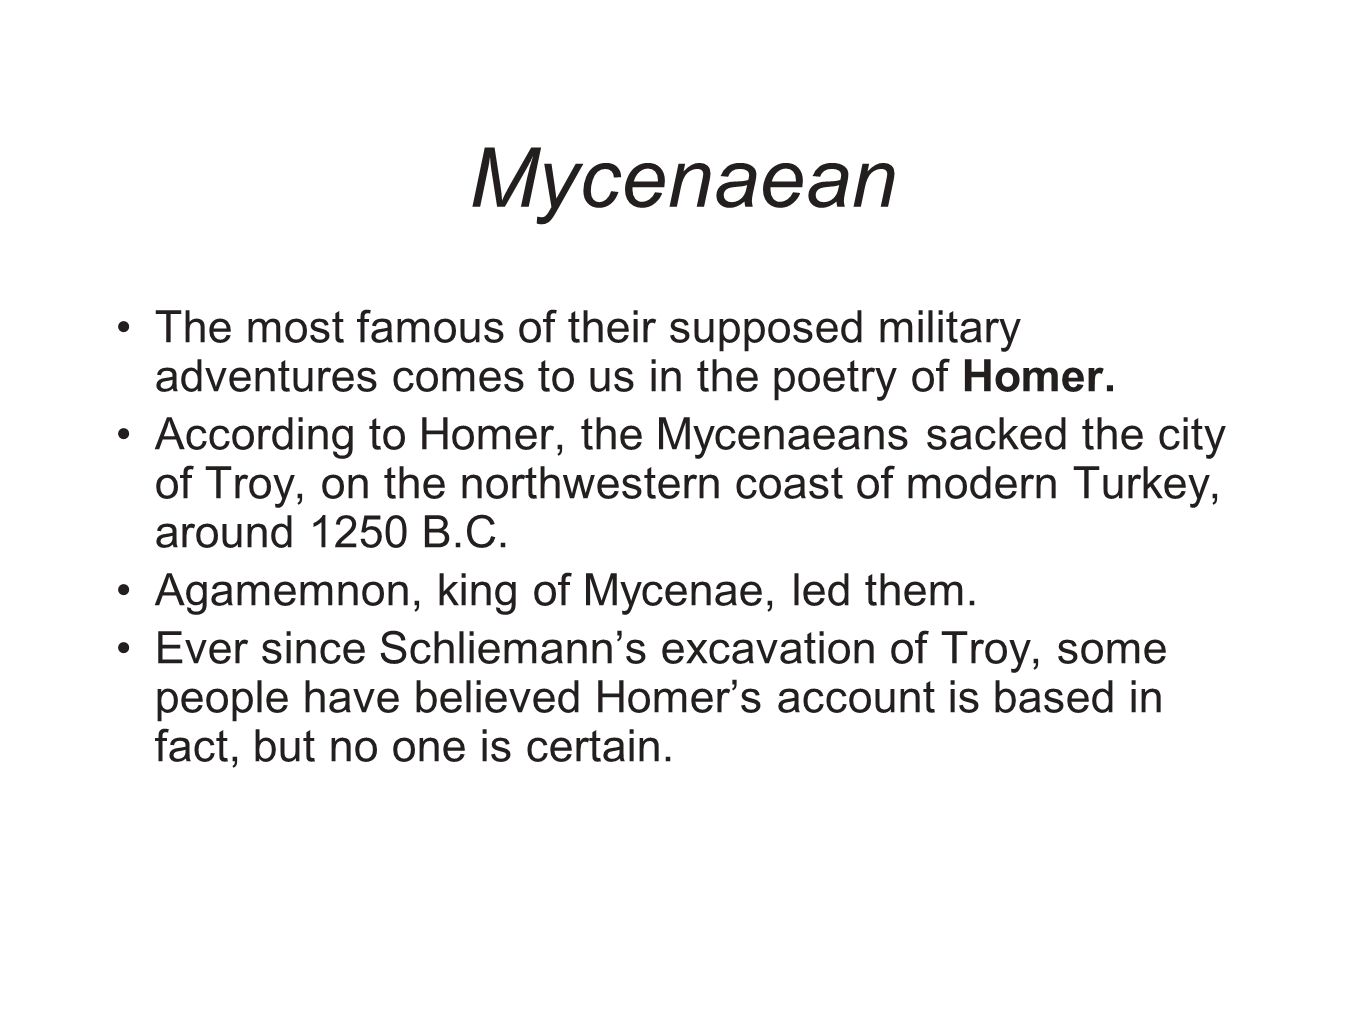 Mycenaean The most famous of their supposed military adventures comes to us in the poetry of Homer. According to Homer, the Mycenaeans sacked the city